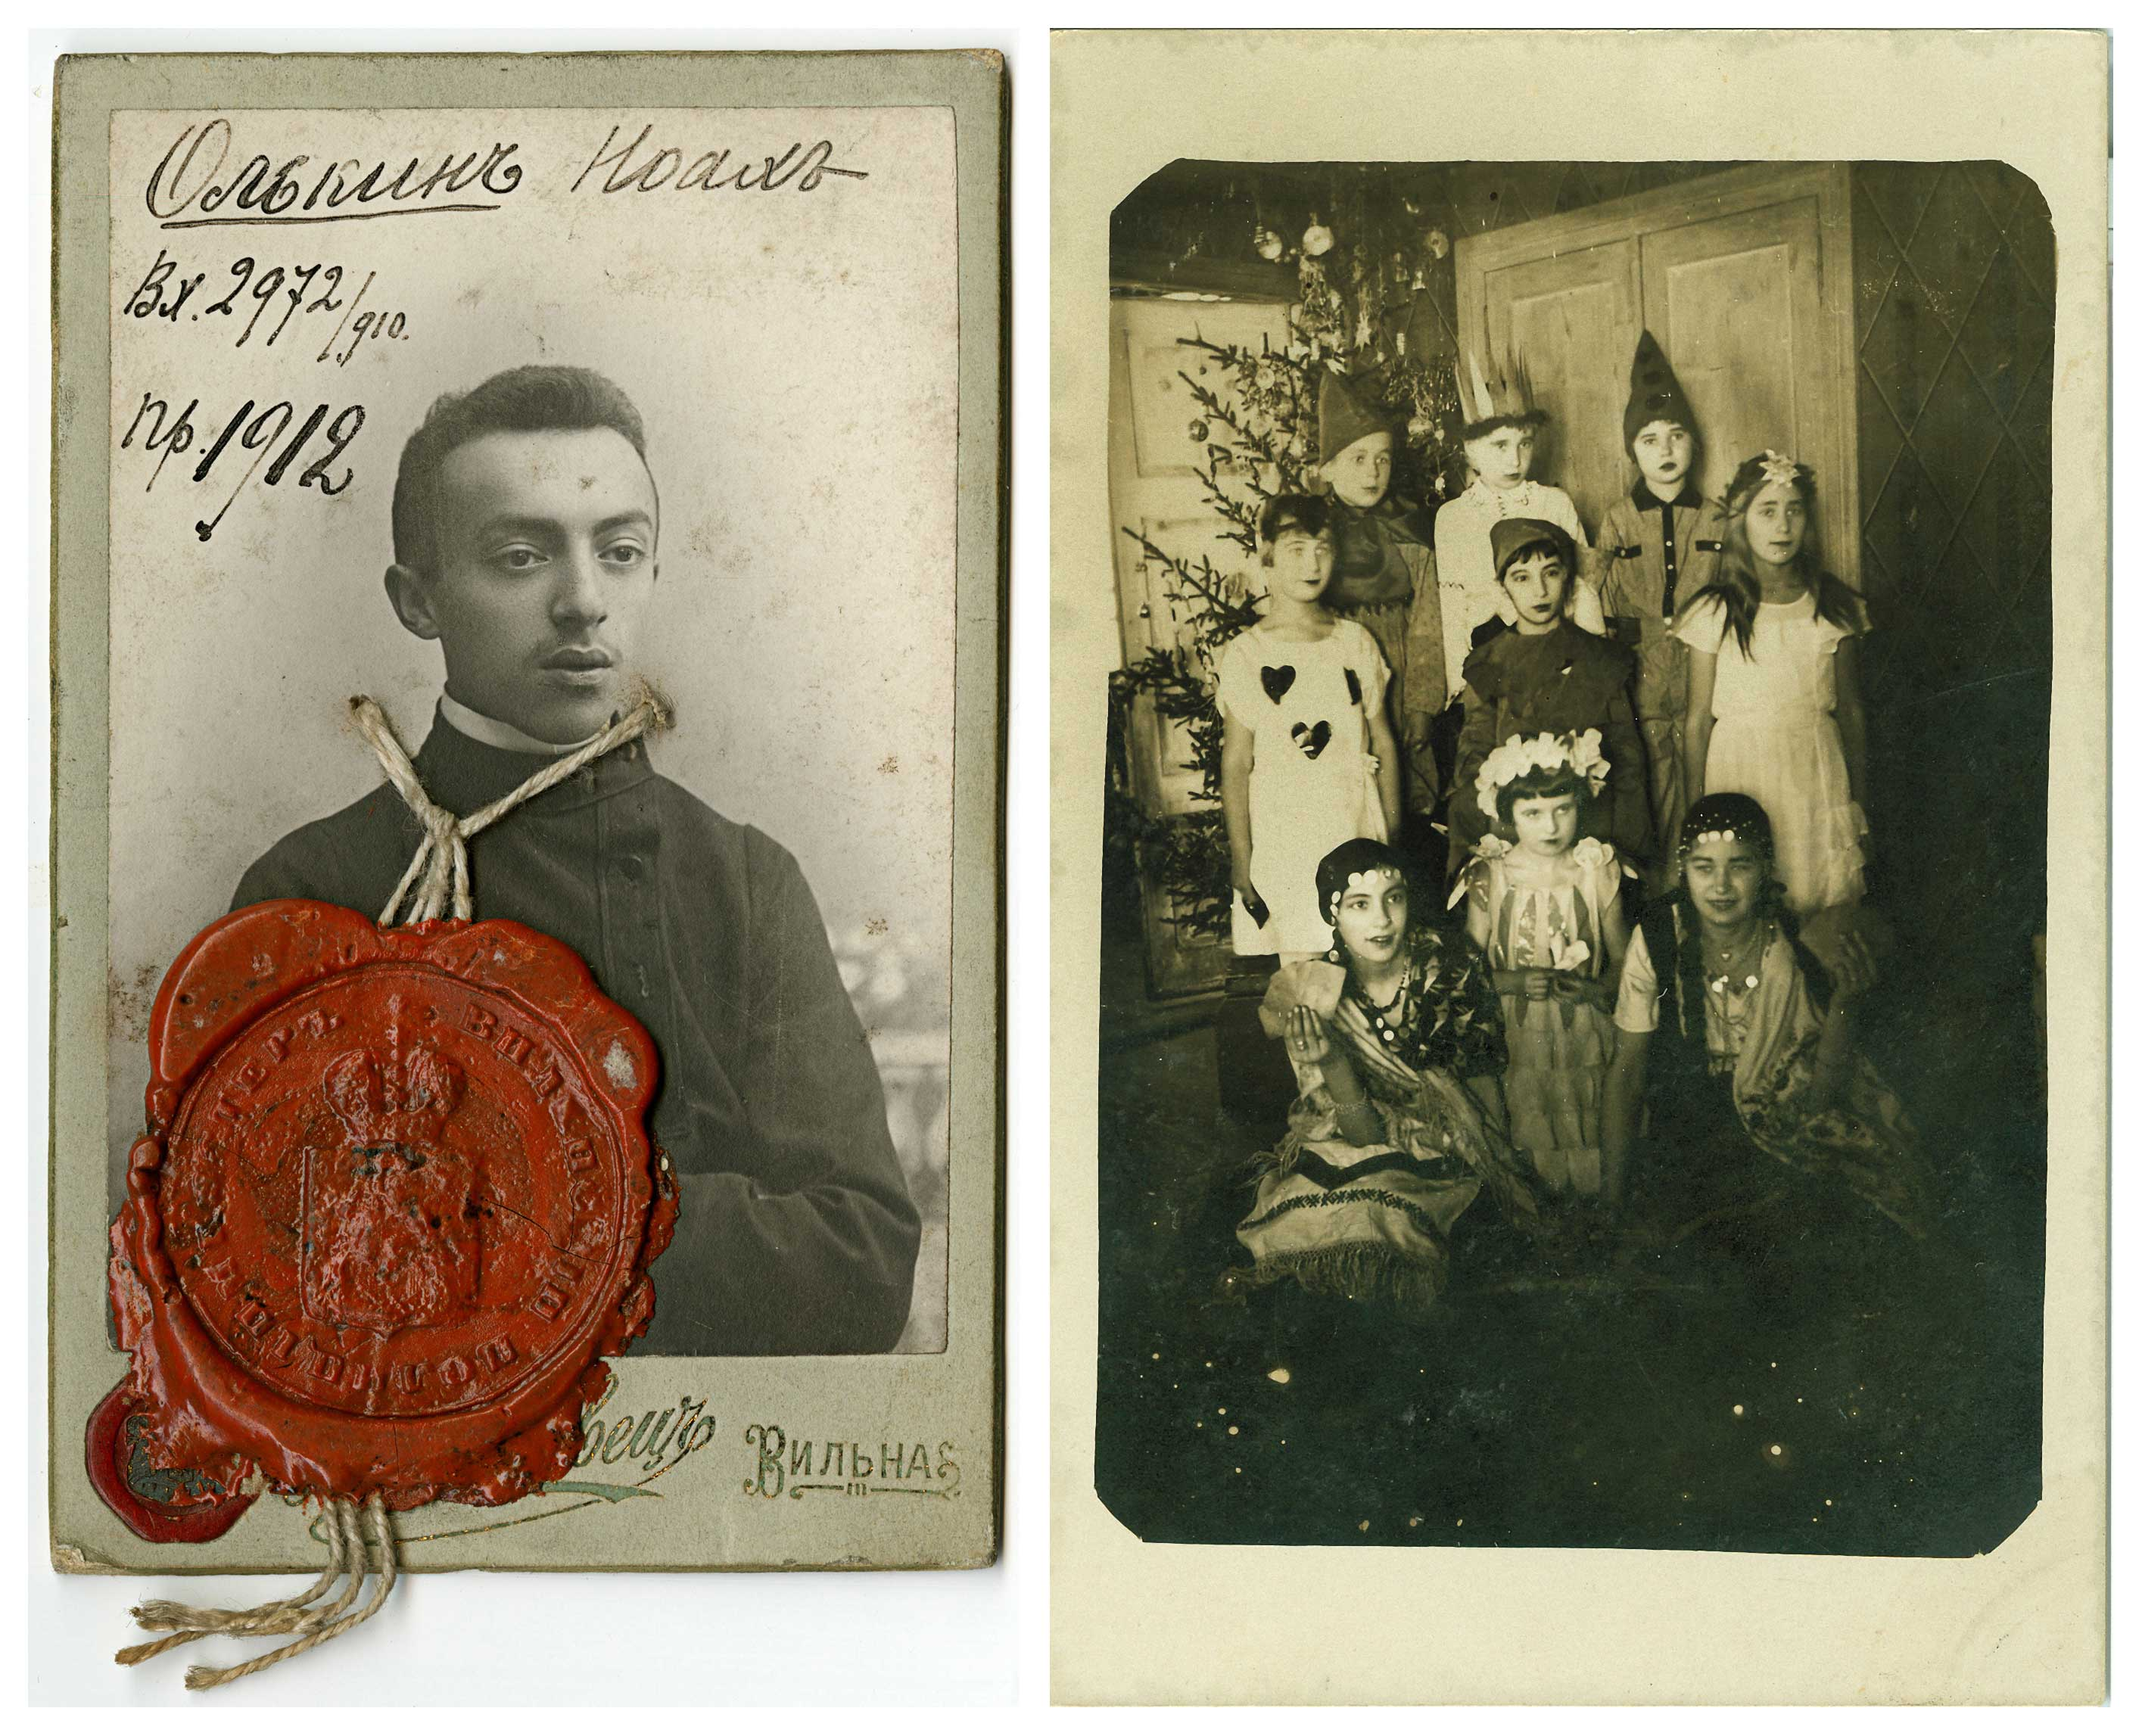 Archival image diptych